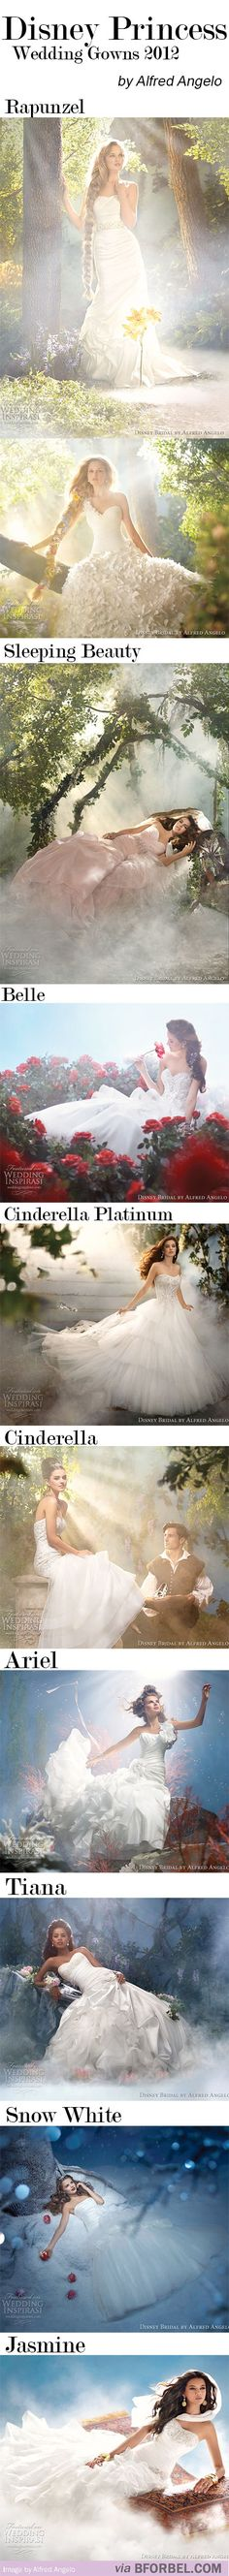 Disney Princess Wedding Gowns 2012.